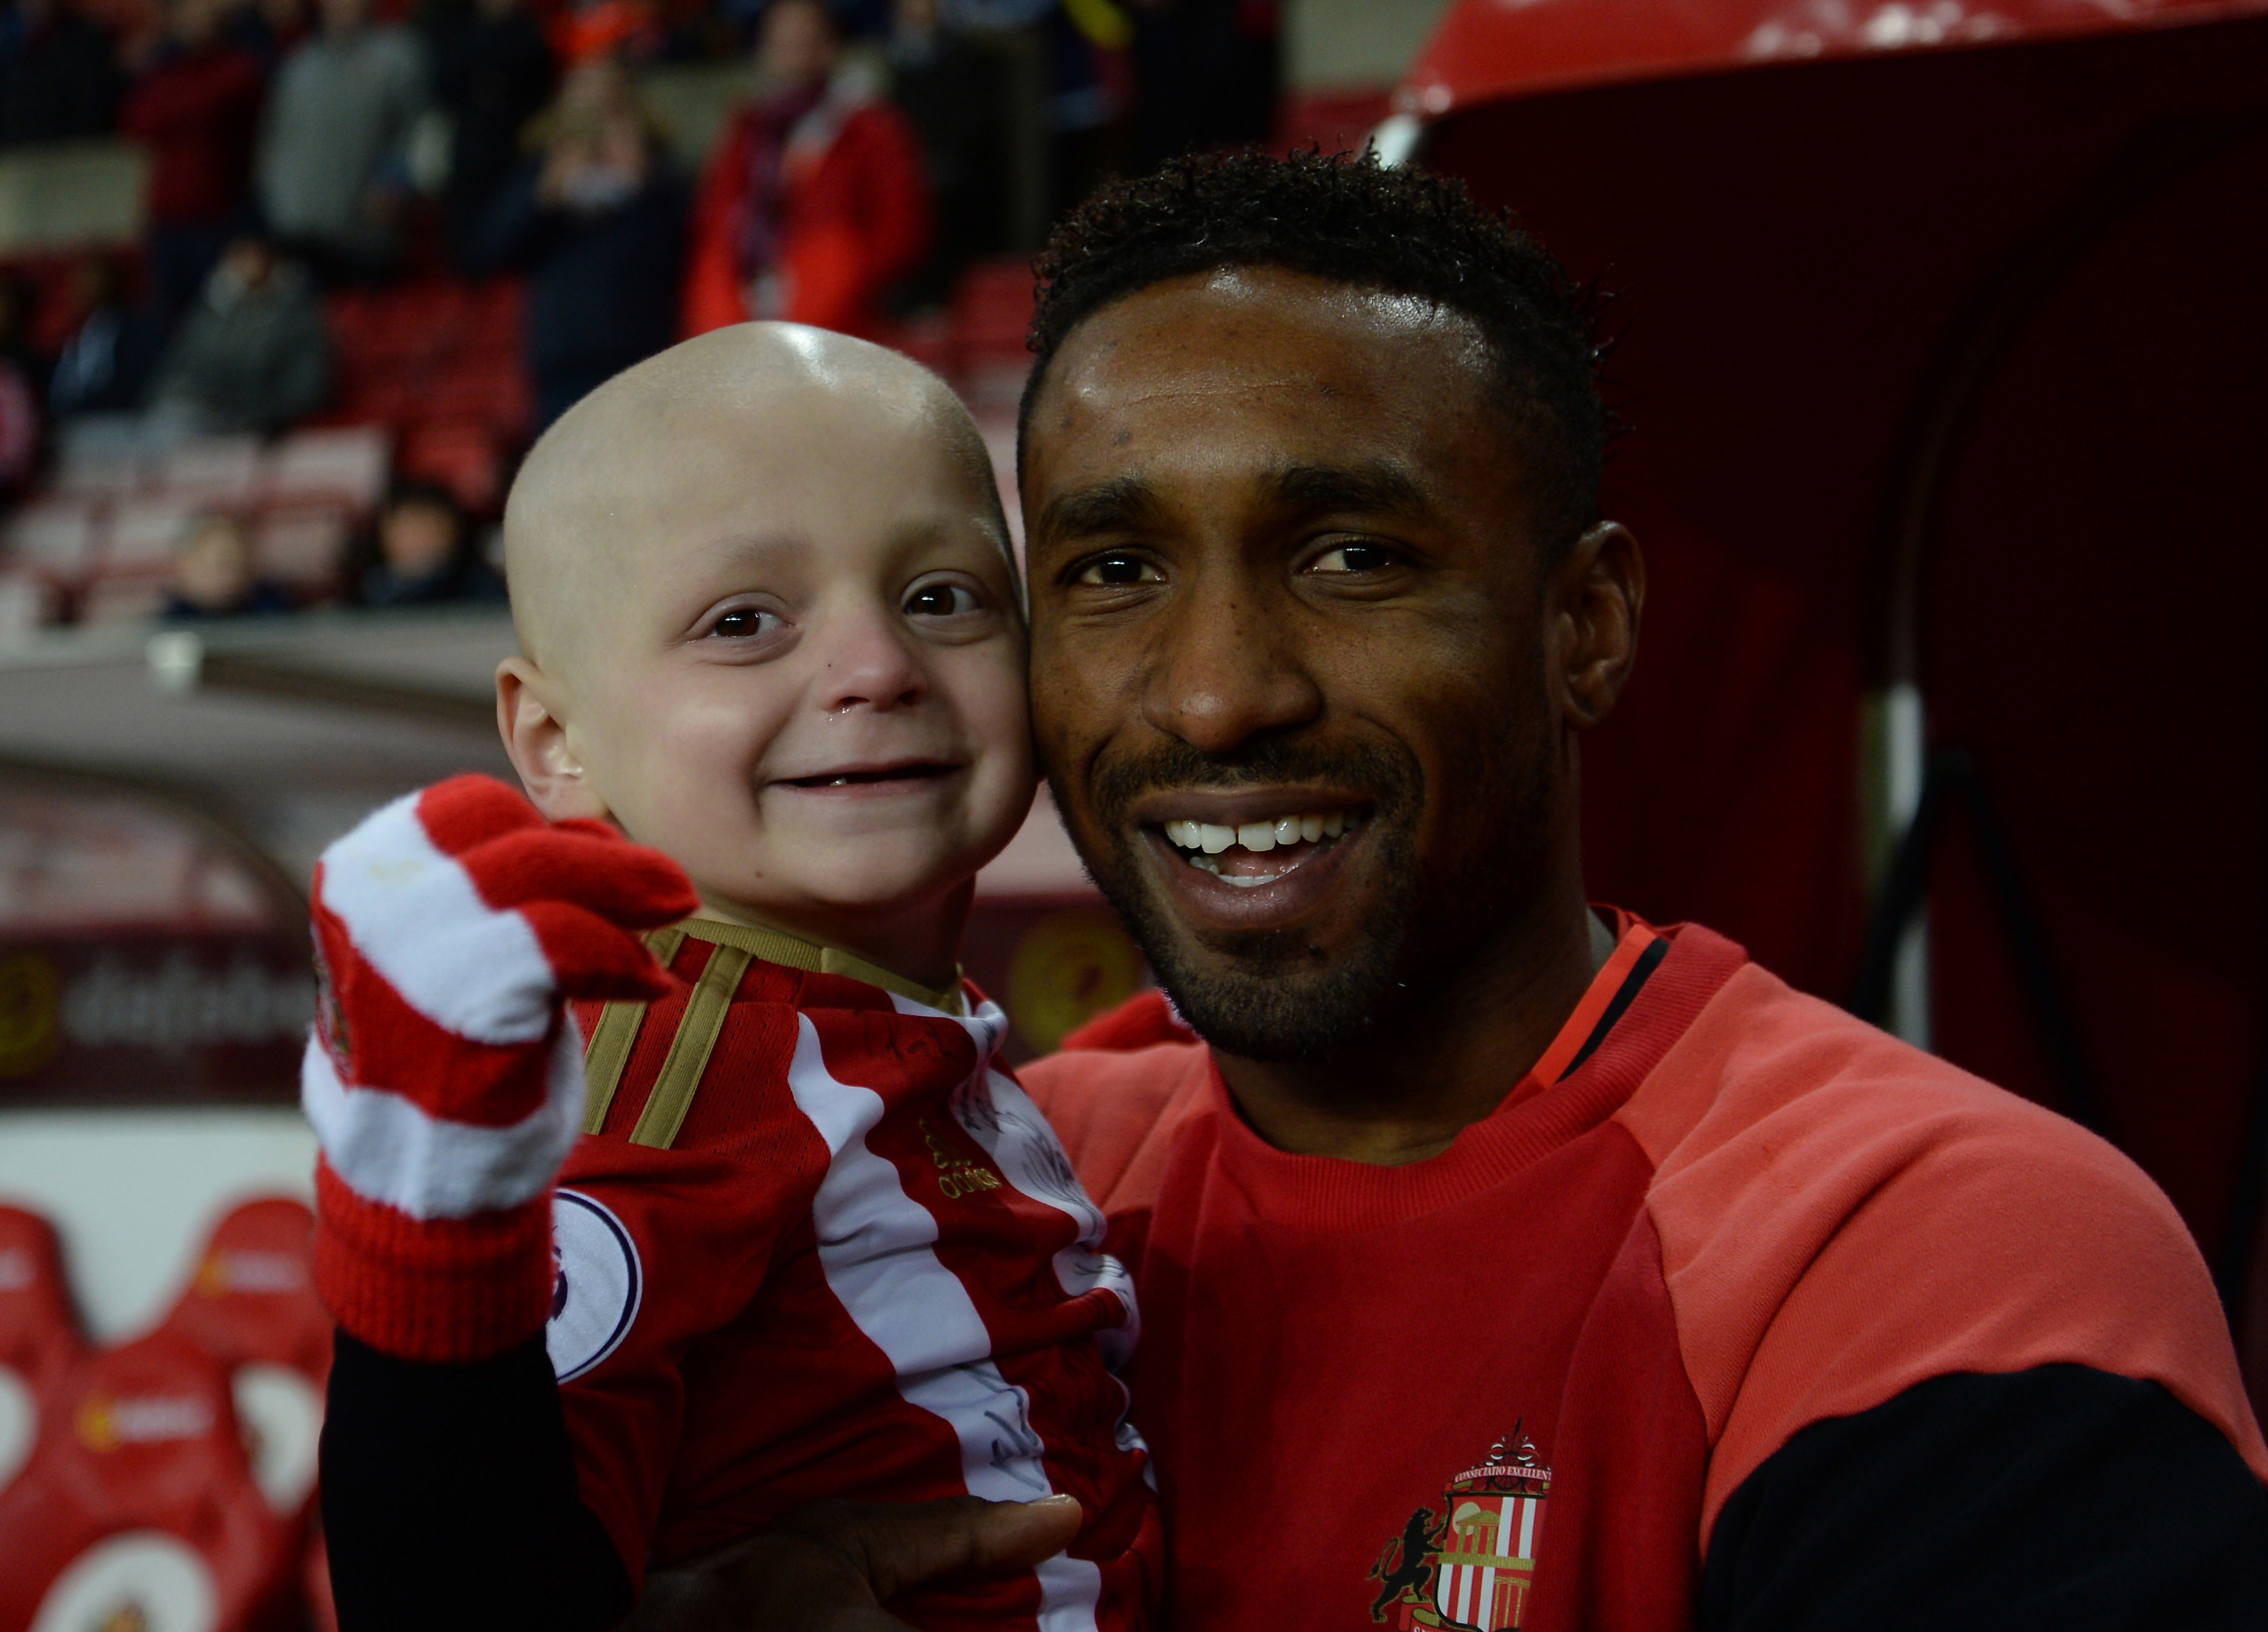 Bradley became good friends with his favourite footballer, Jermain Defoe. Credit: PA Images